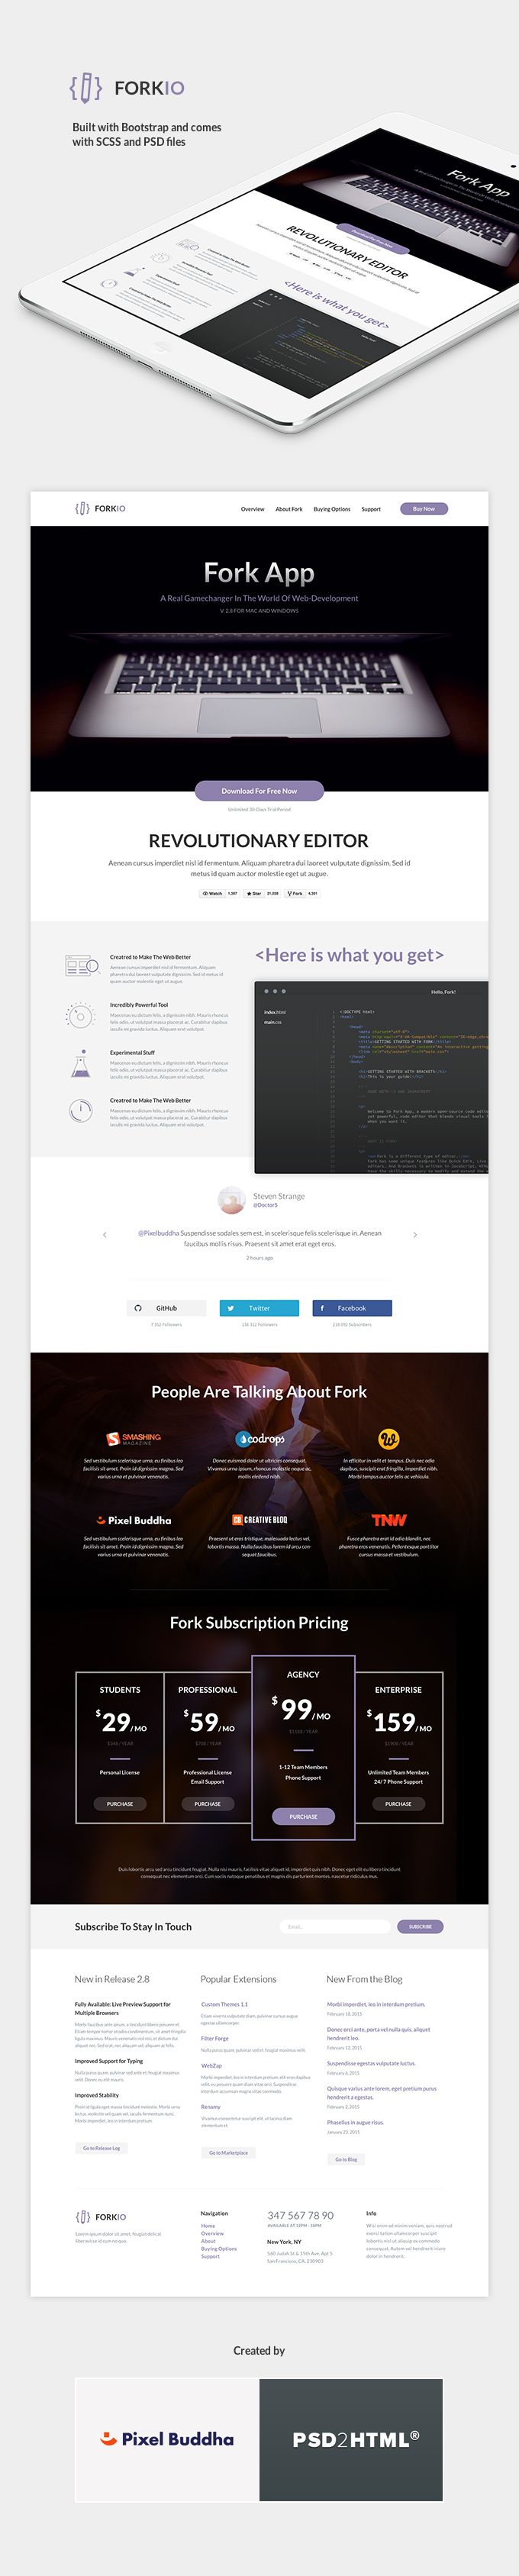 Forkio: One-Page HTML Template - download freebie by PixelBuddha